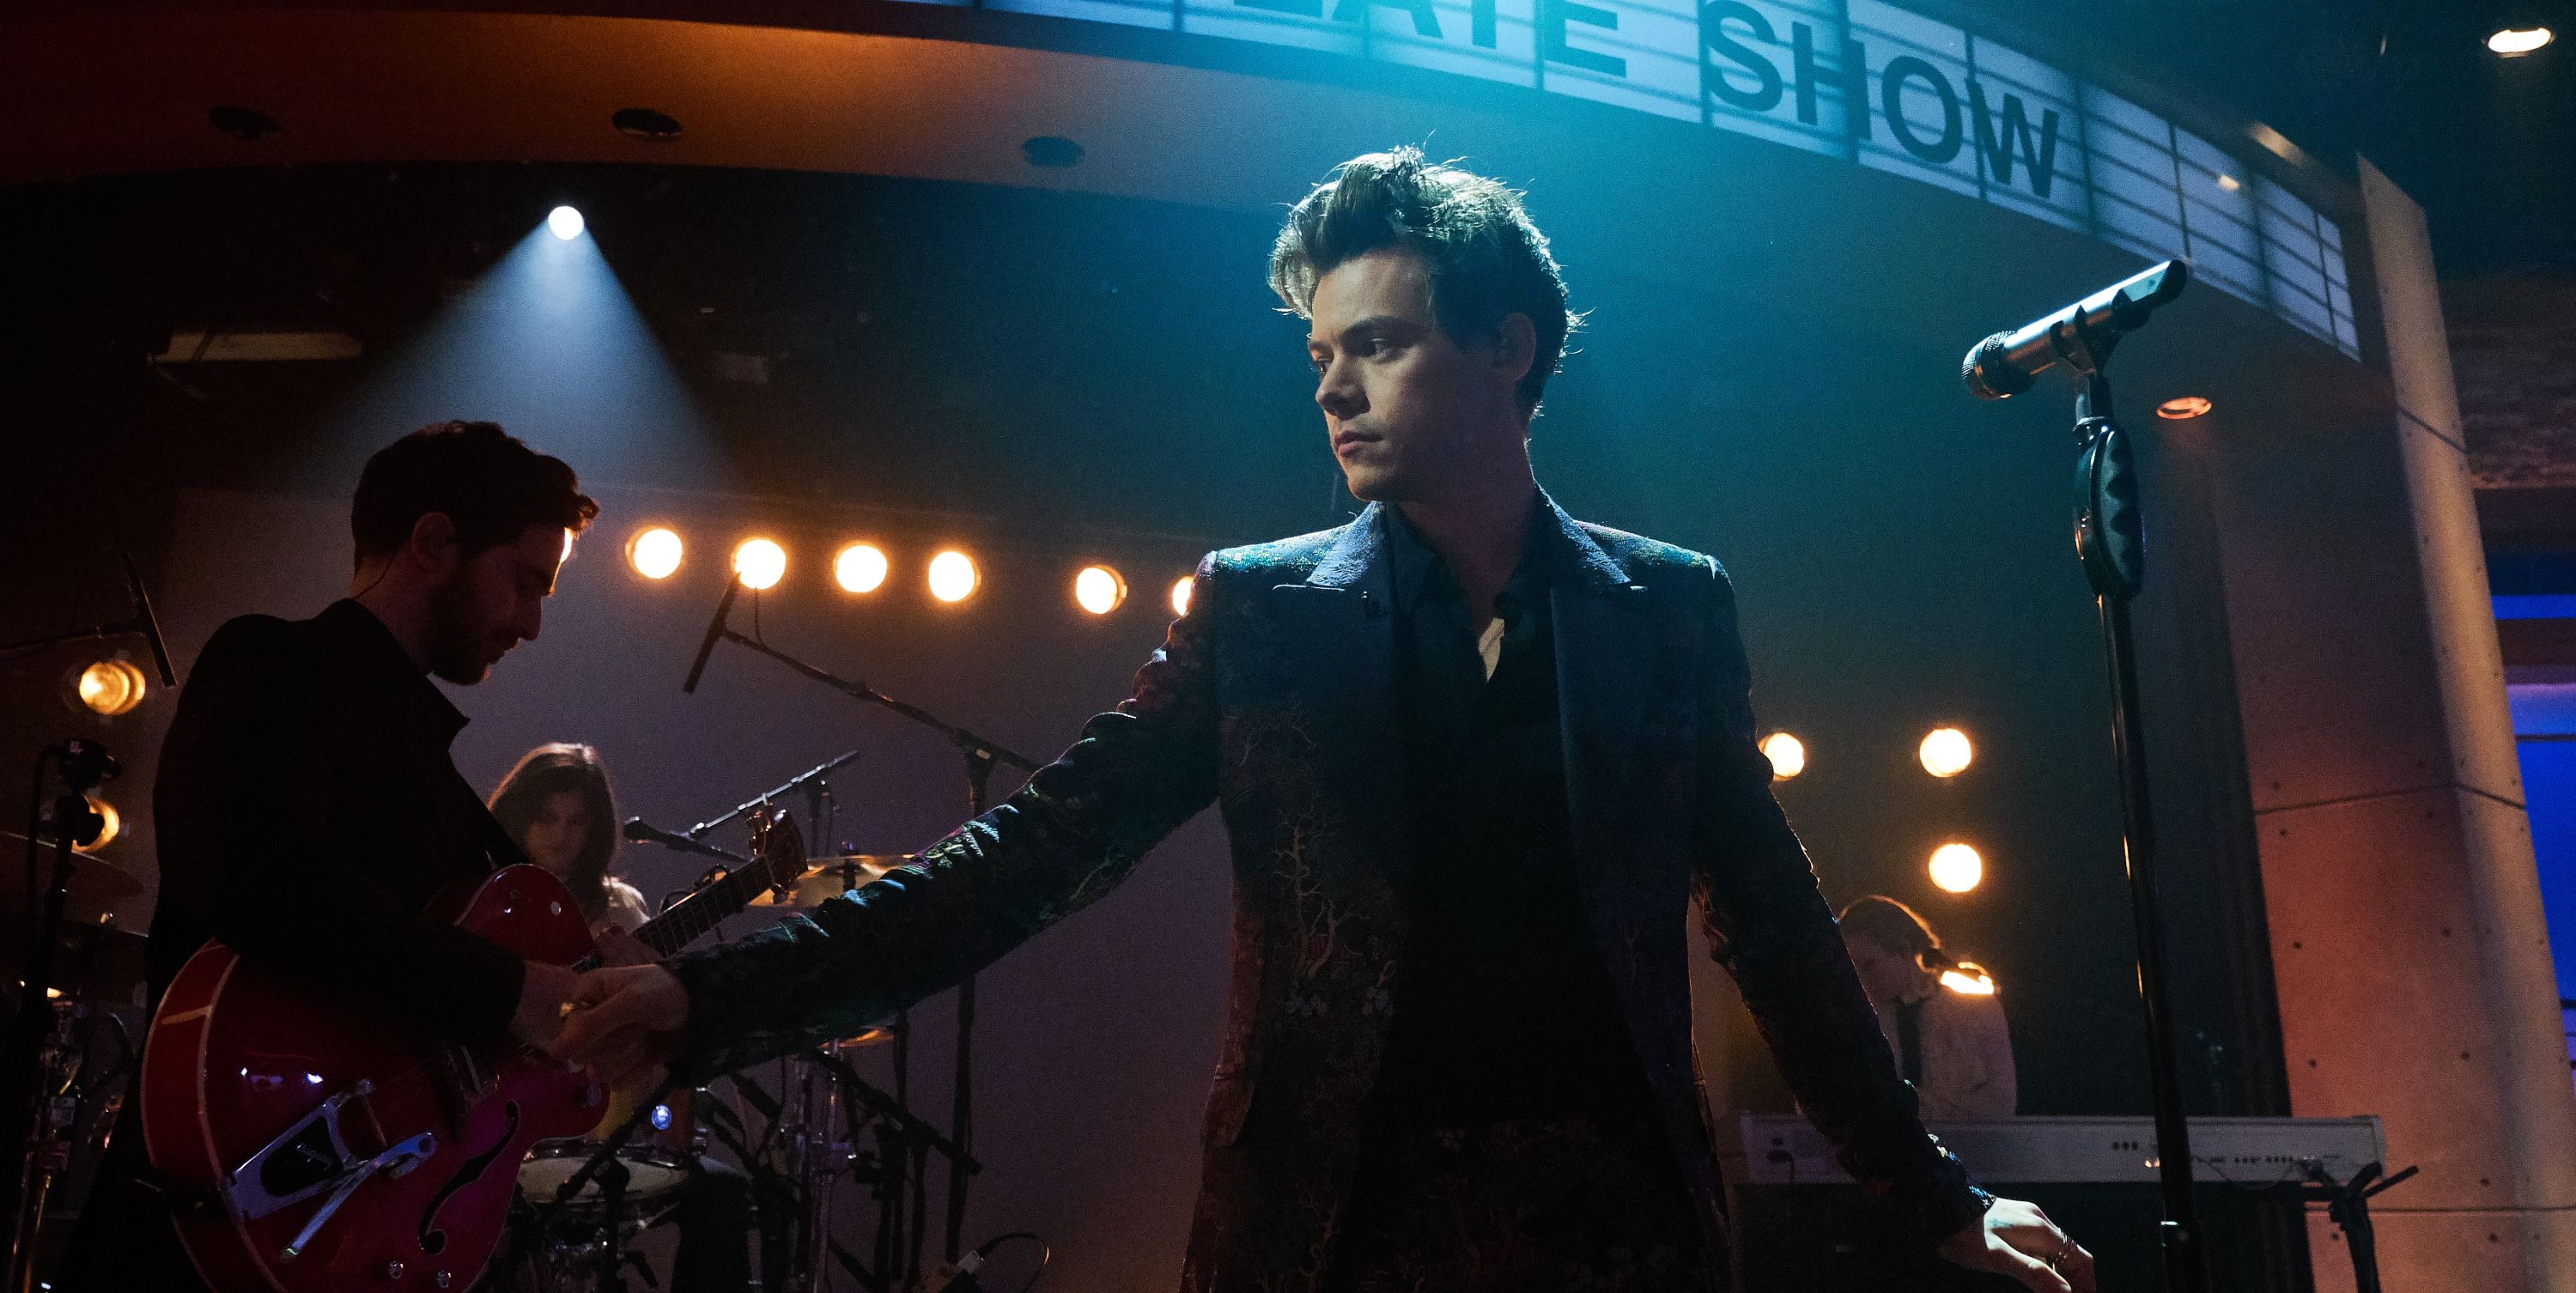 Harry Styles Fans Sent Condolences to the Singer After His Stepdad Passed Away